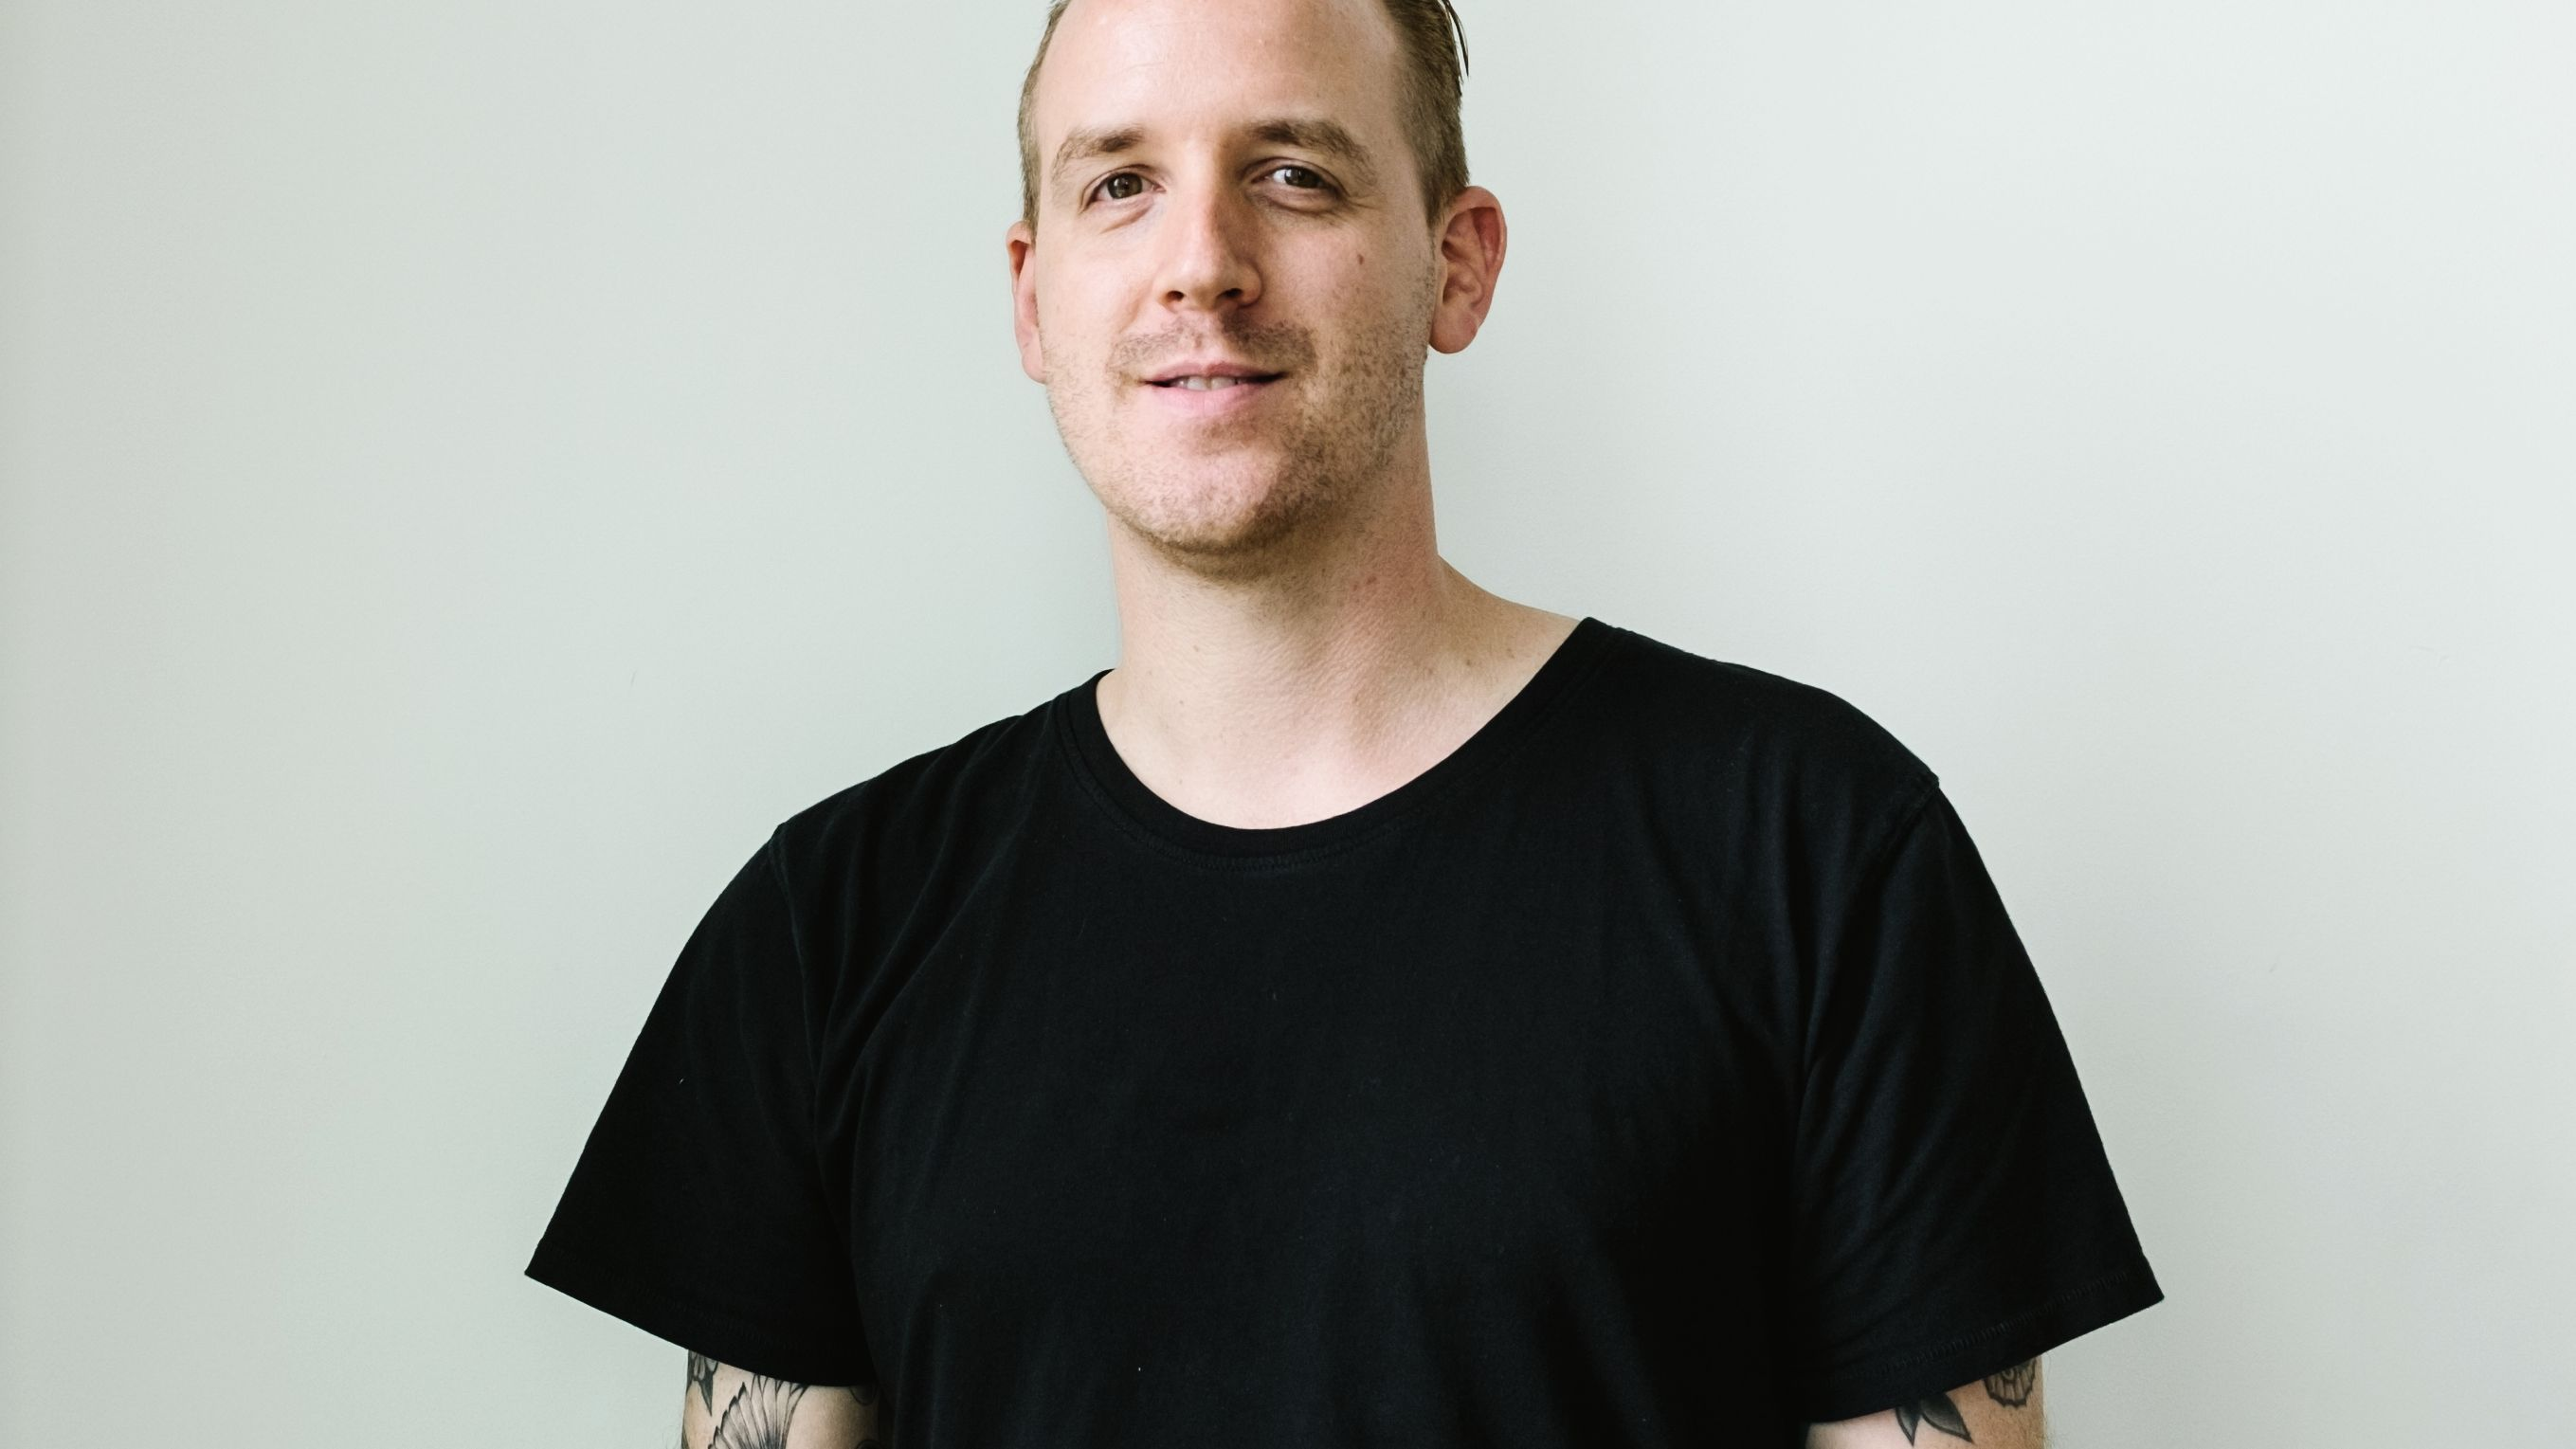 Alastair Cotterill, Creative Strategist bei Instagram